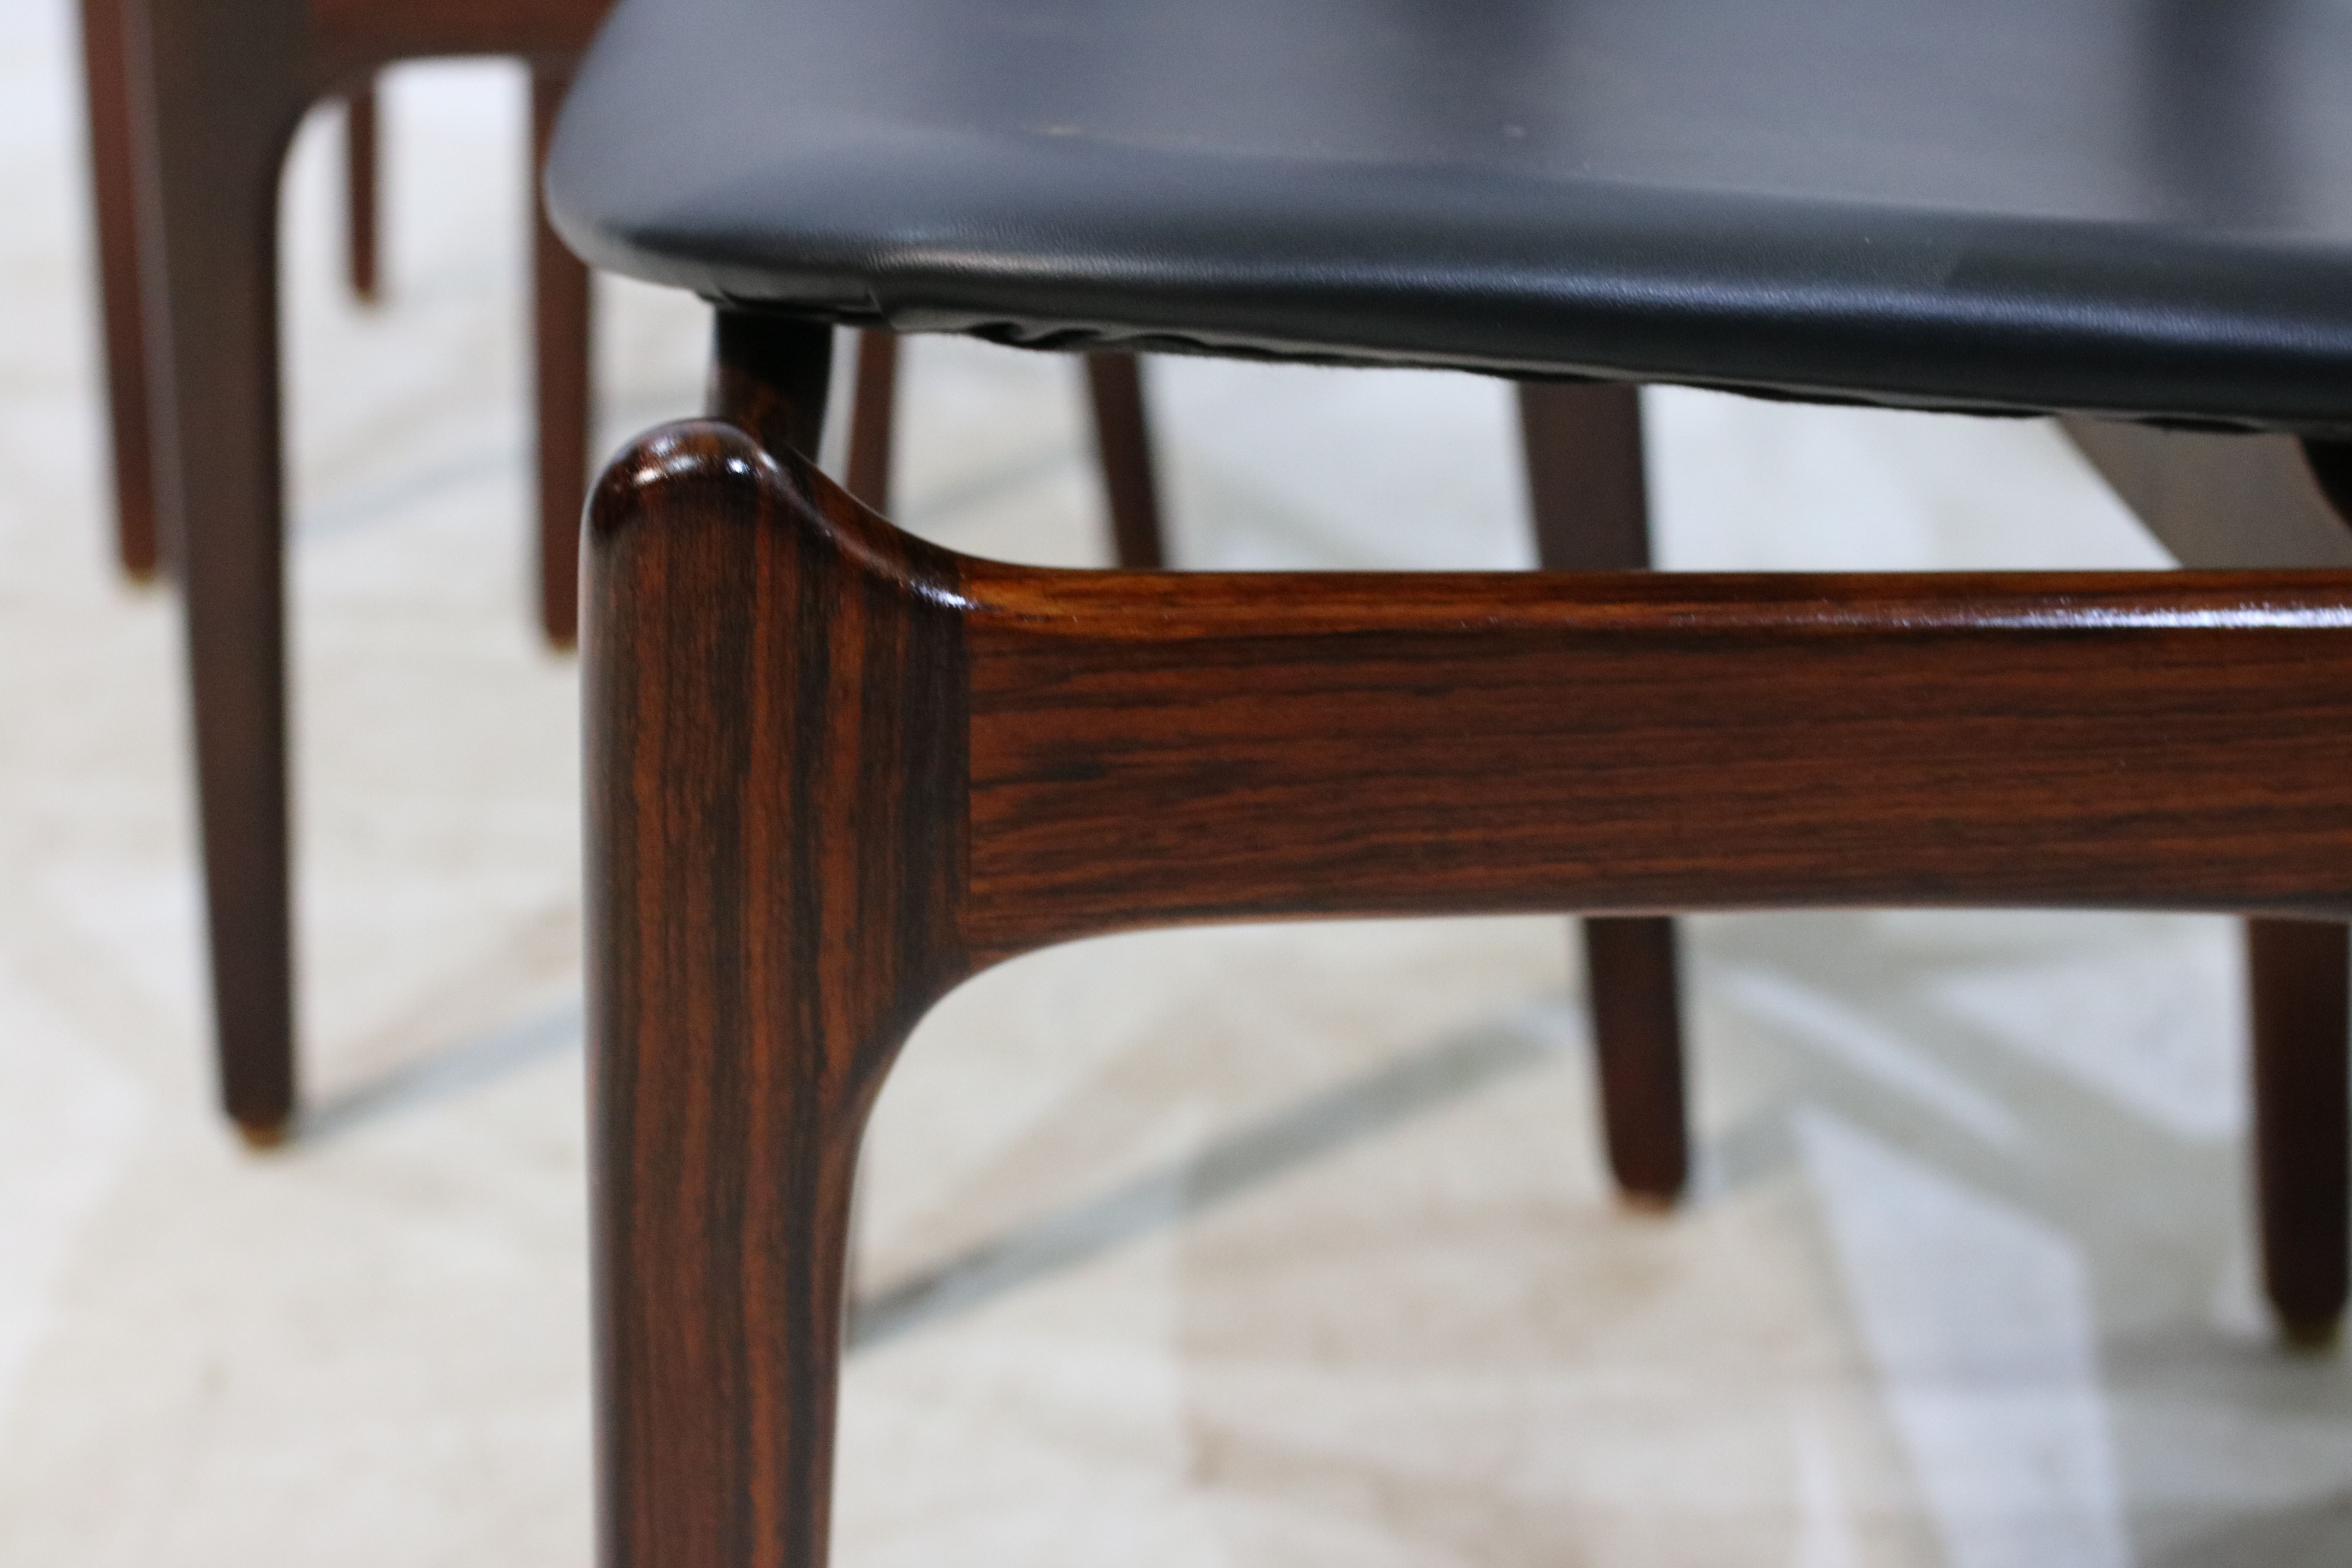 Set of 6 rosewood dining chairs by Erik Buch for Oddense